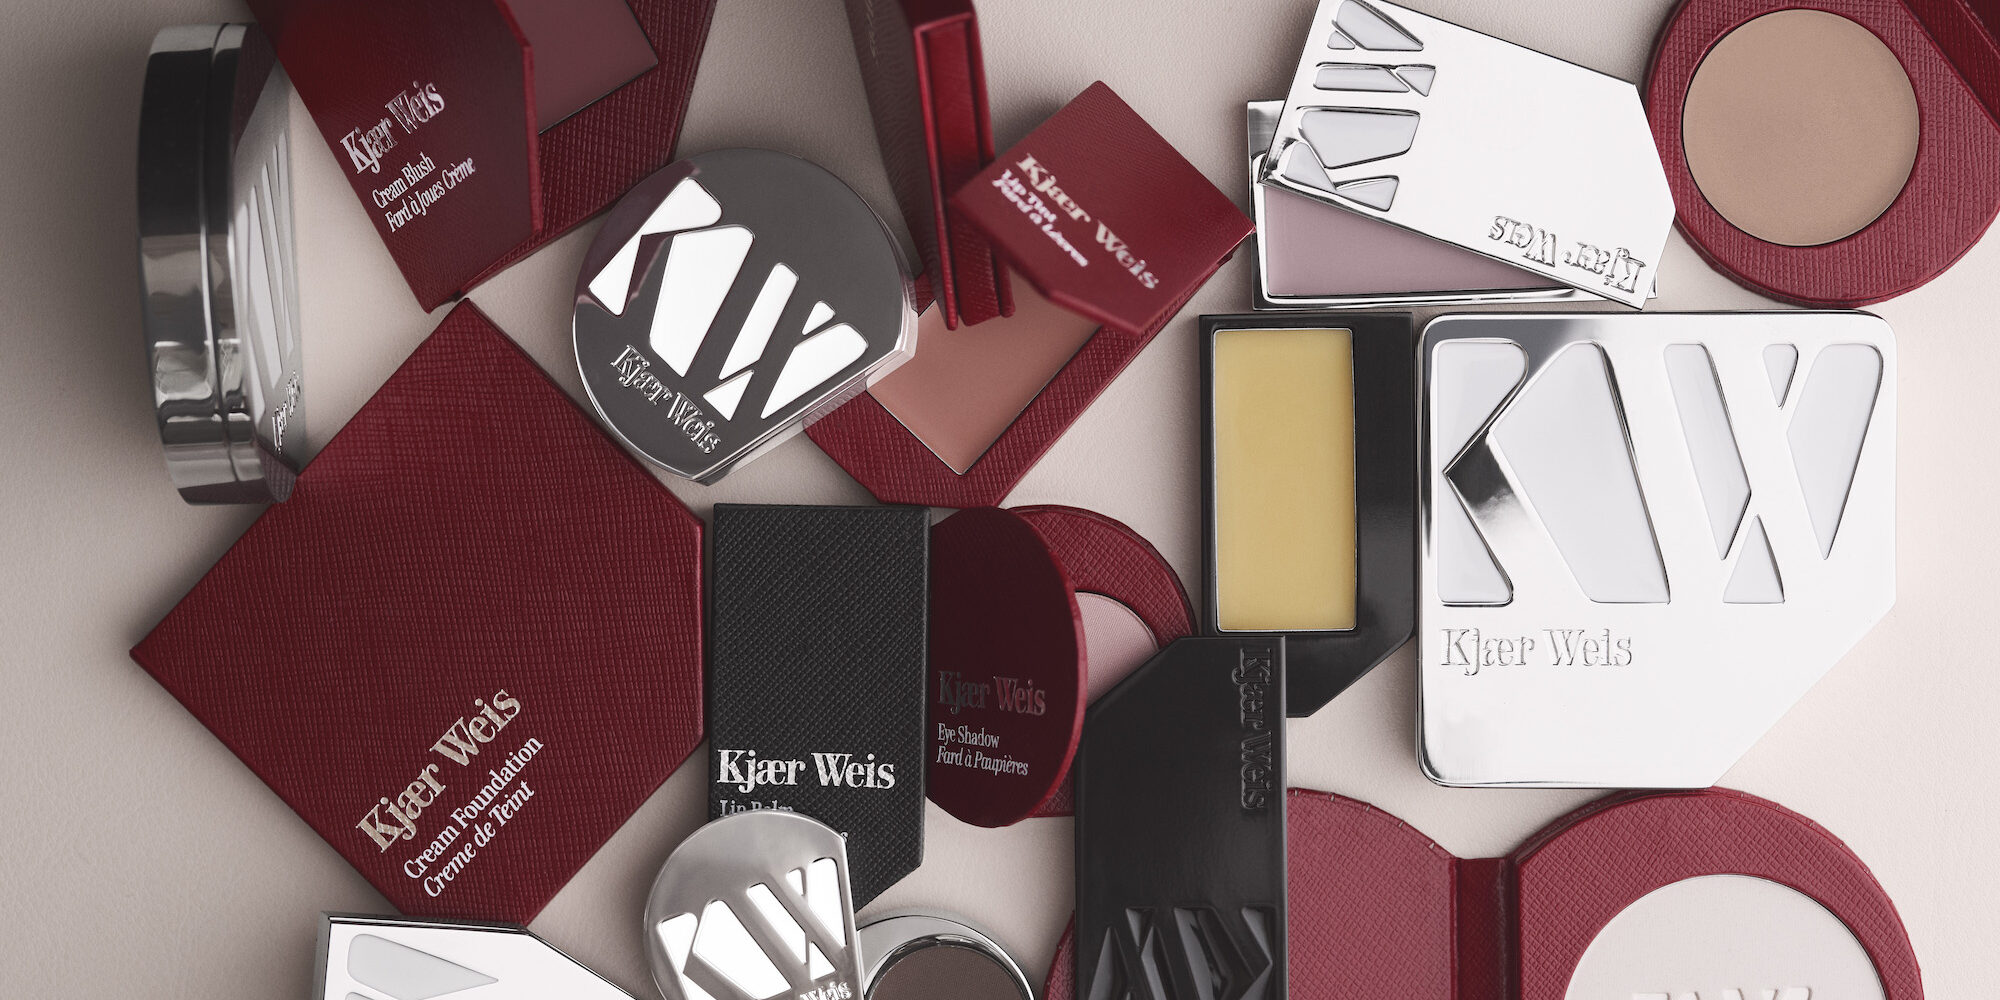 The Story Behind Kjaer Weis's Striking Refillable Packaging—And How The Brand Still Moves The Needle On Sustainability